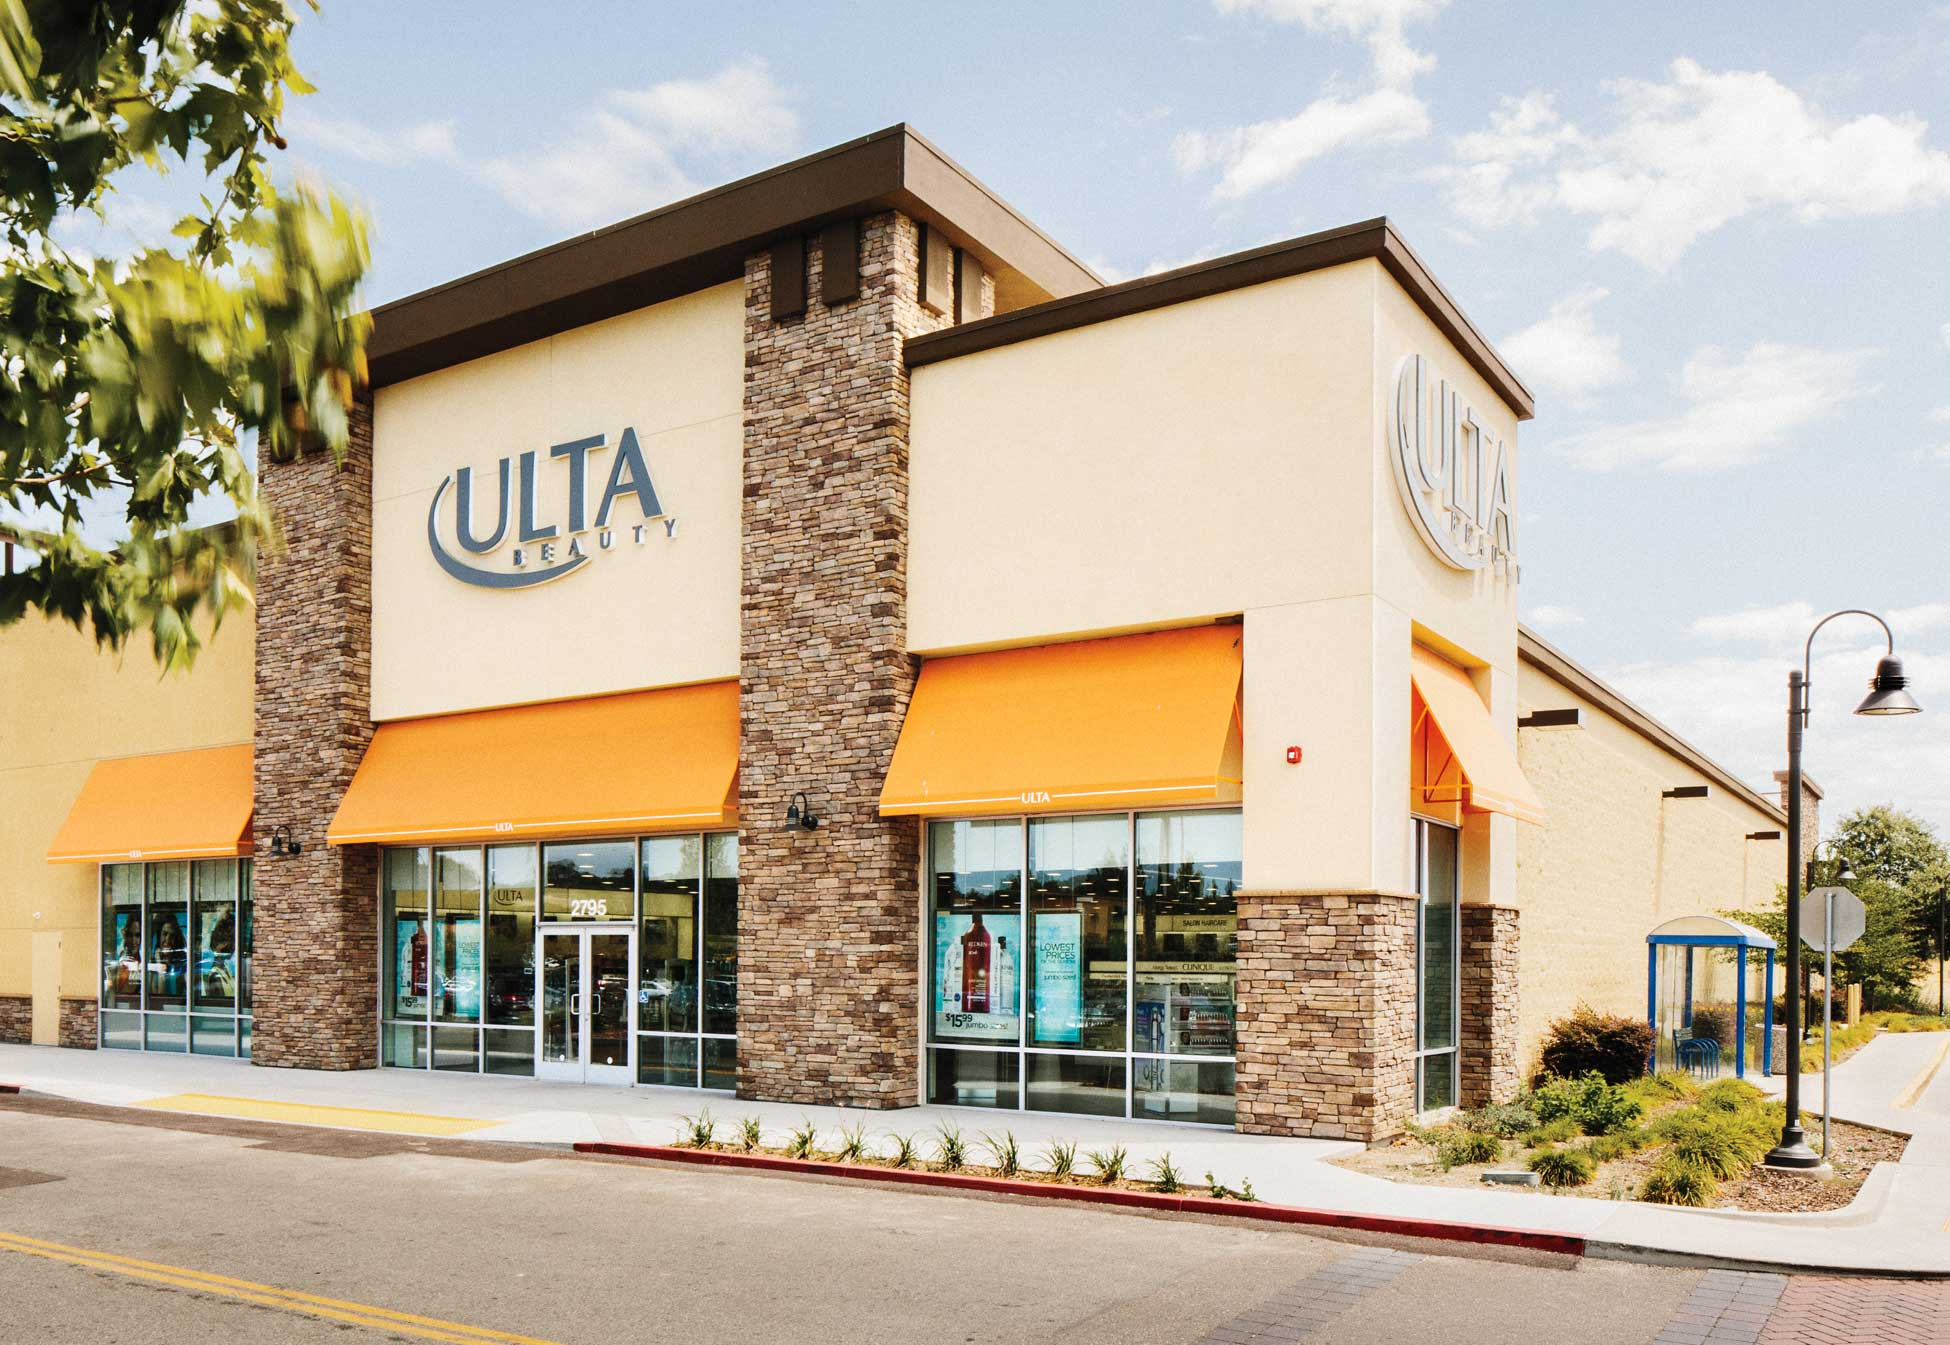 ulta beauty store